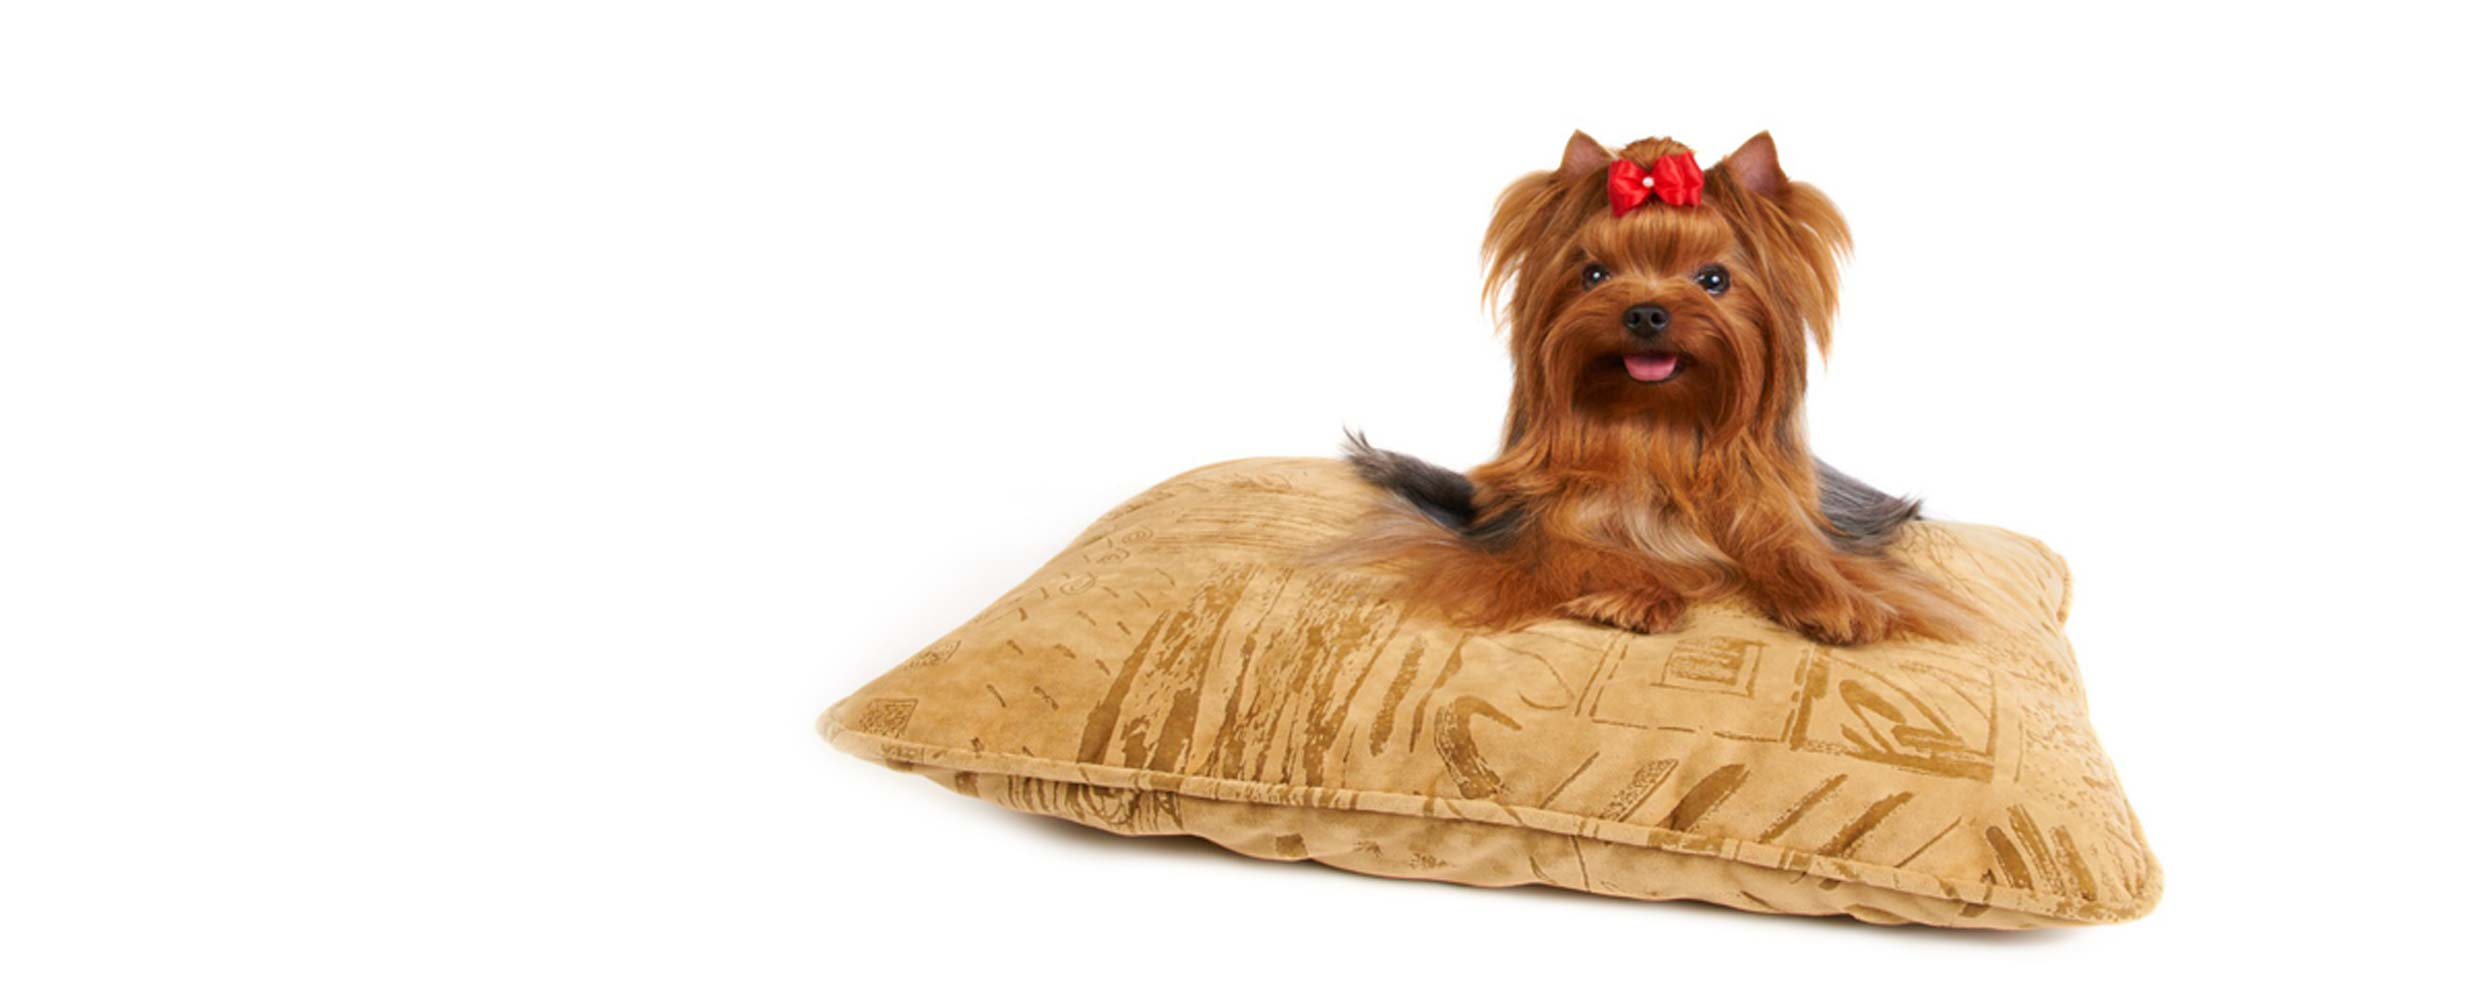 Groomed Yorkie on a cushion by Alison Roets